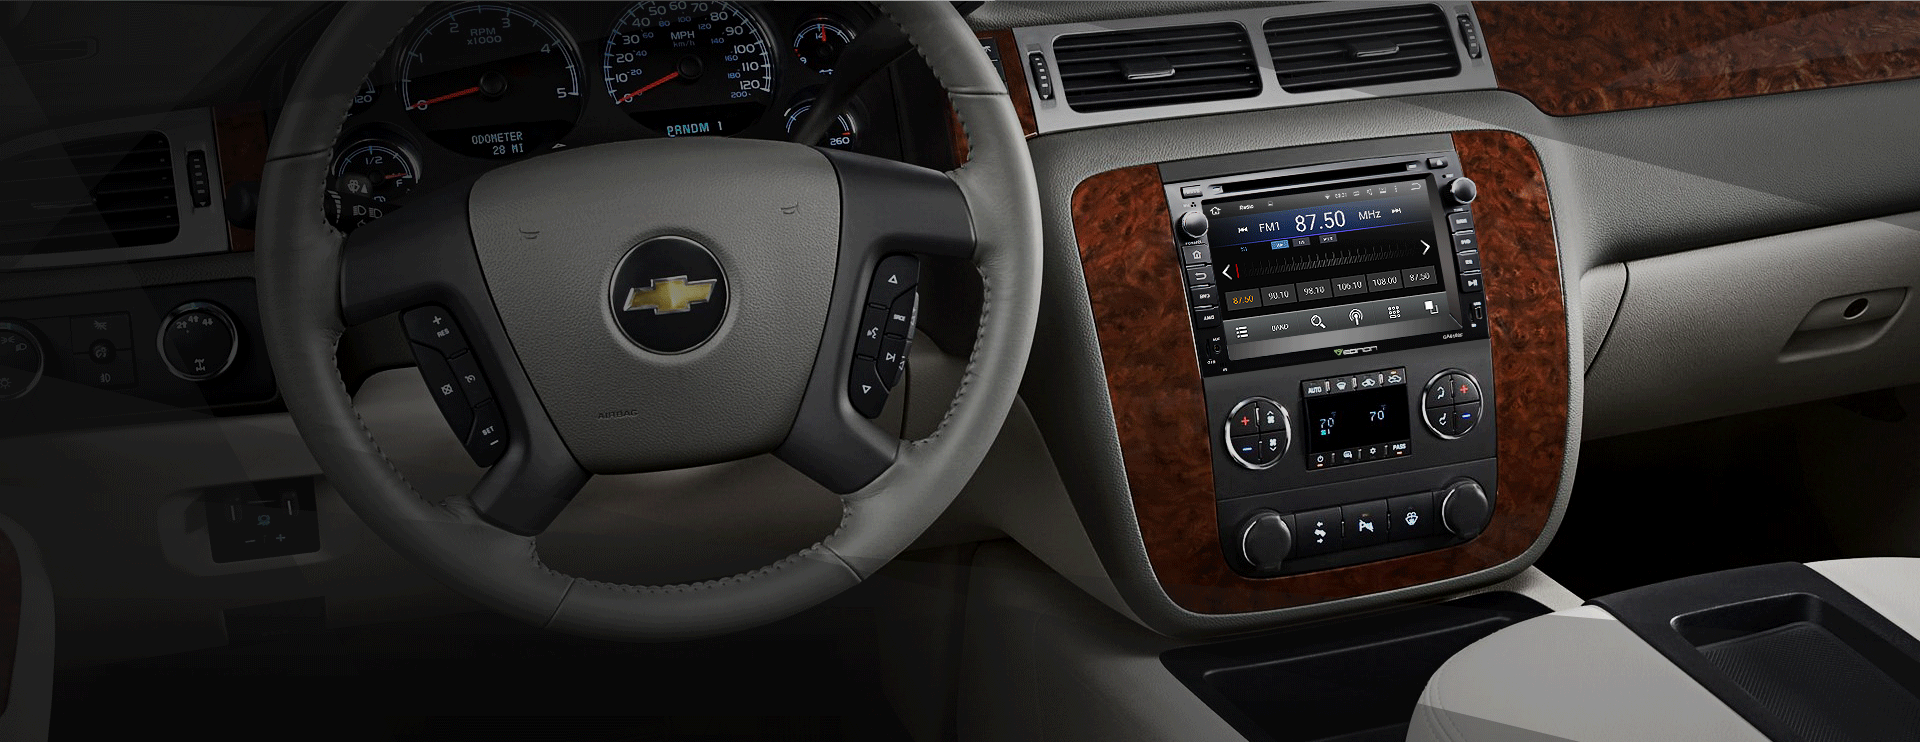 With a shorter form factor the ga6180f is tailored to fit perfectly and seamlessly into chevrolet gmc and buick